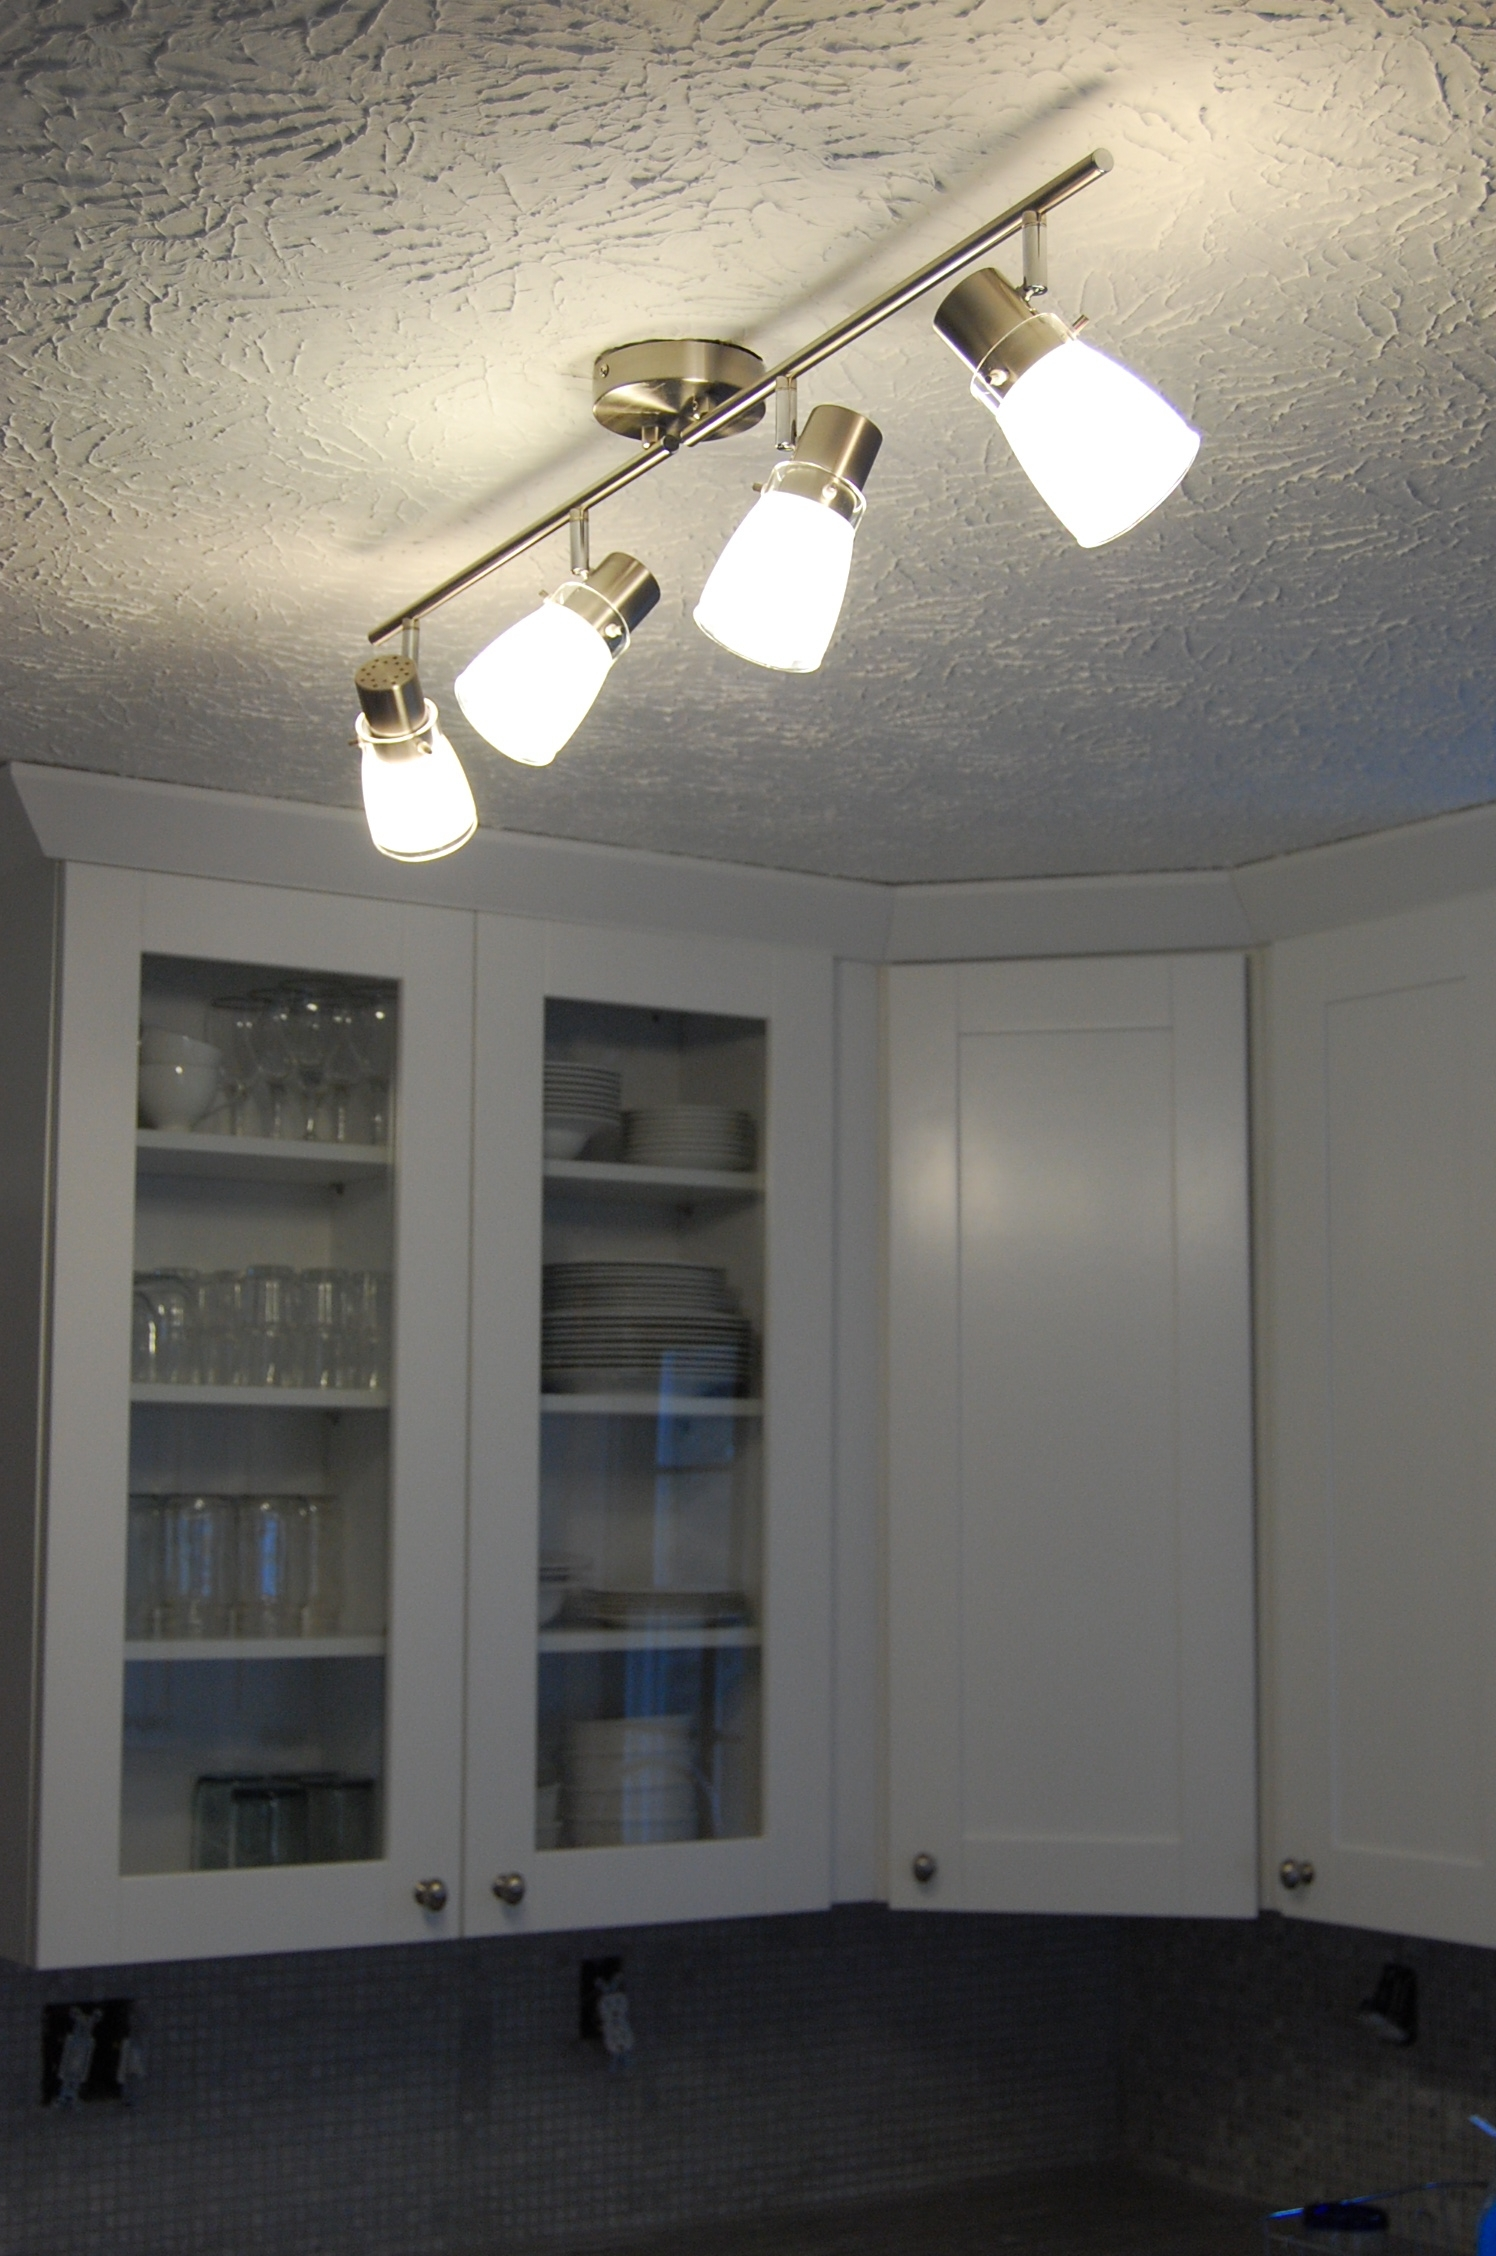 Lighting: Lighten Up Your Home With Lowes Led Track Lighting With Regard To Most Up To Date Outdoor Ceiling Track Lighting (View 7 of 20)